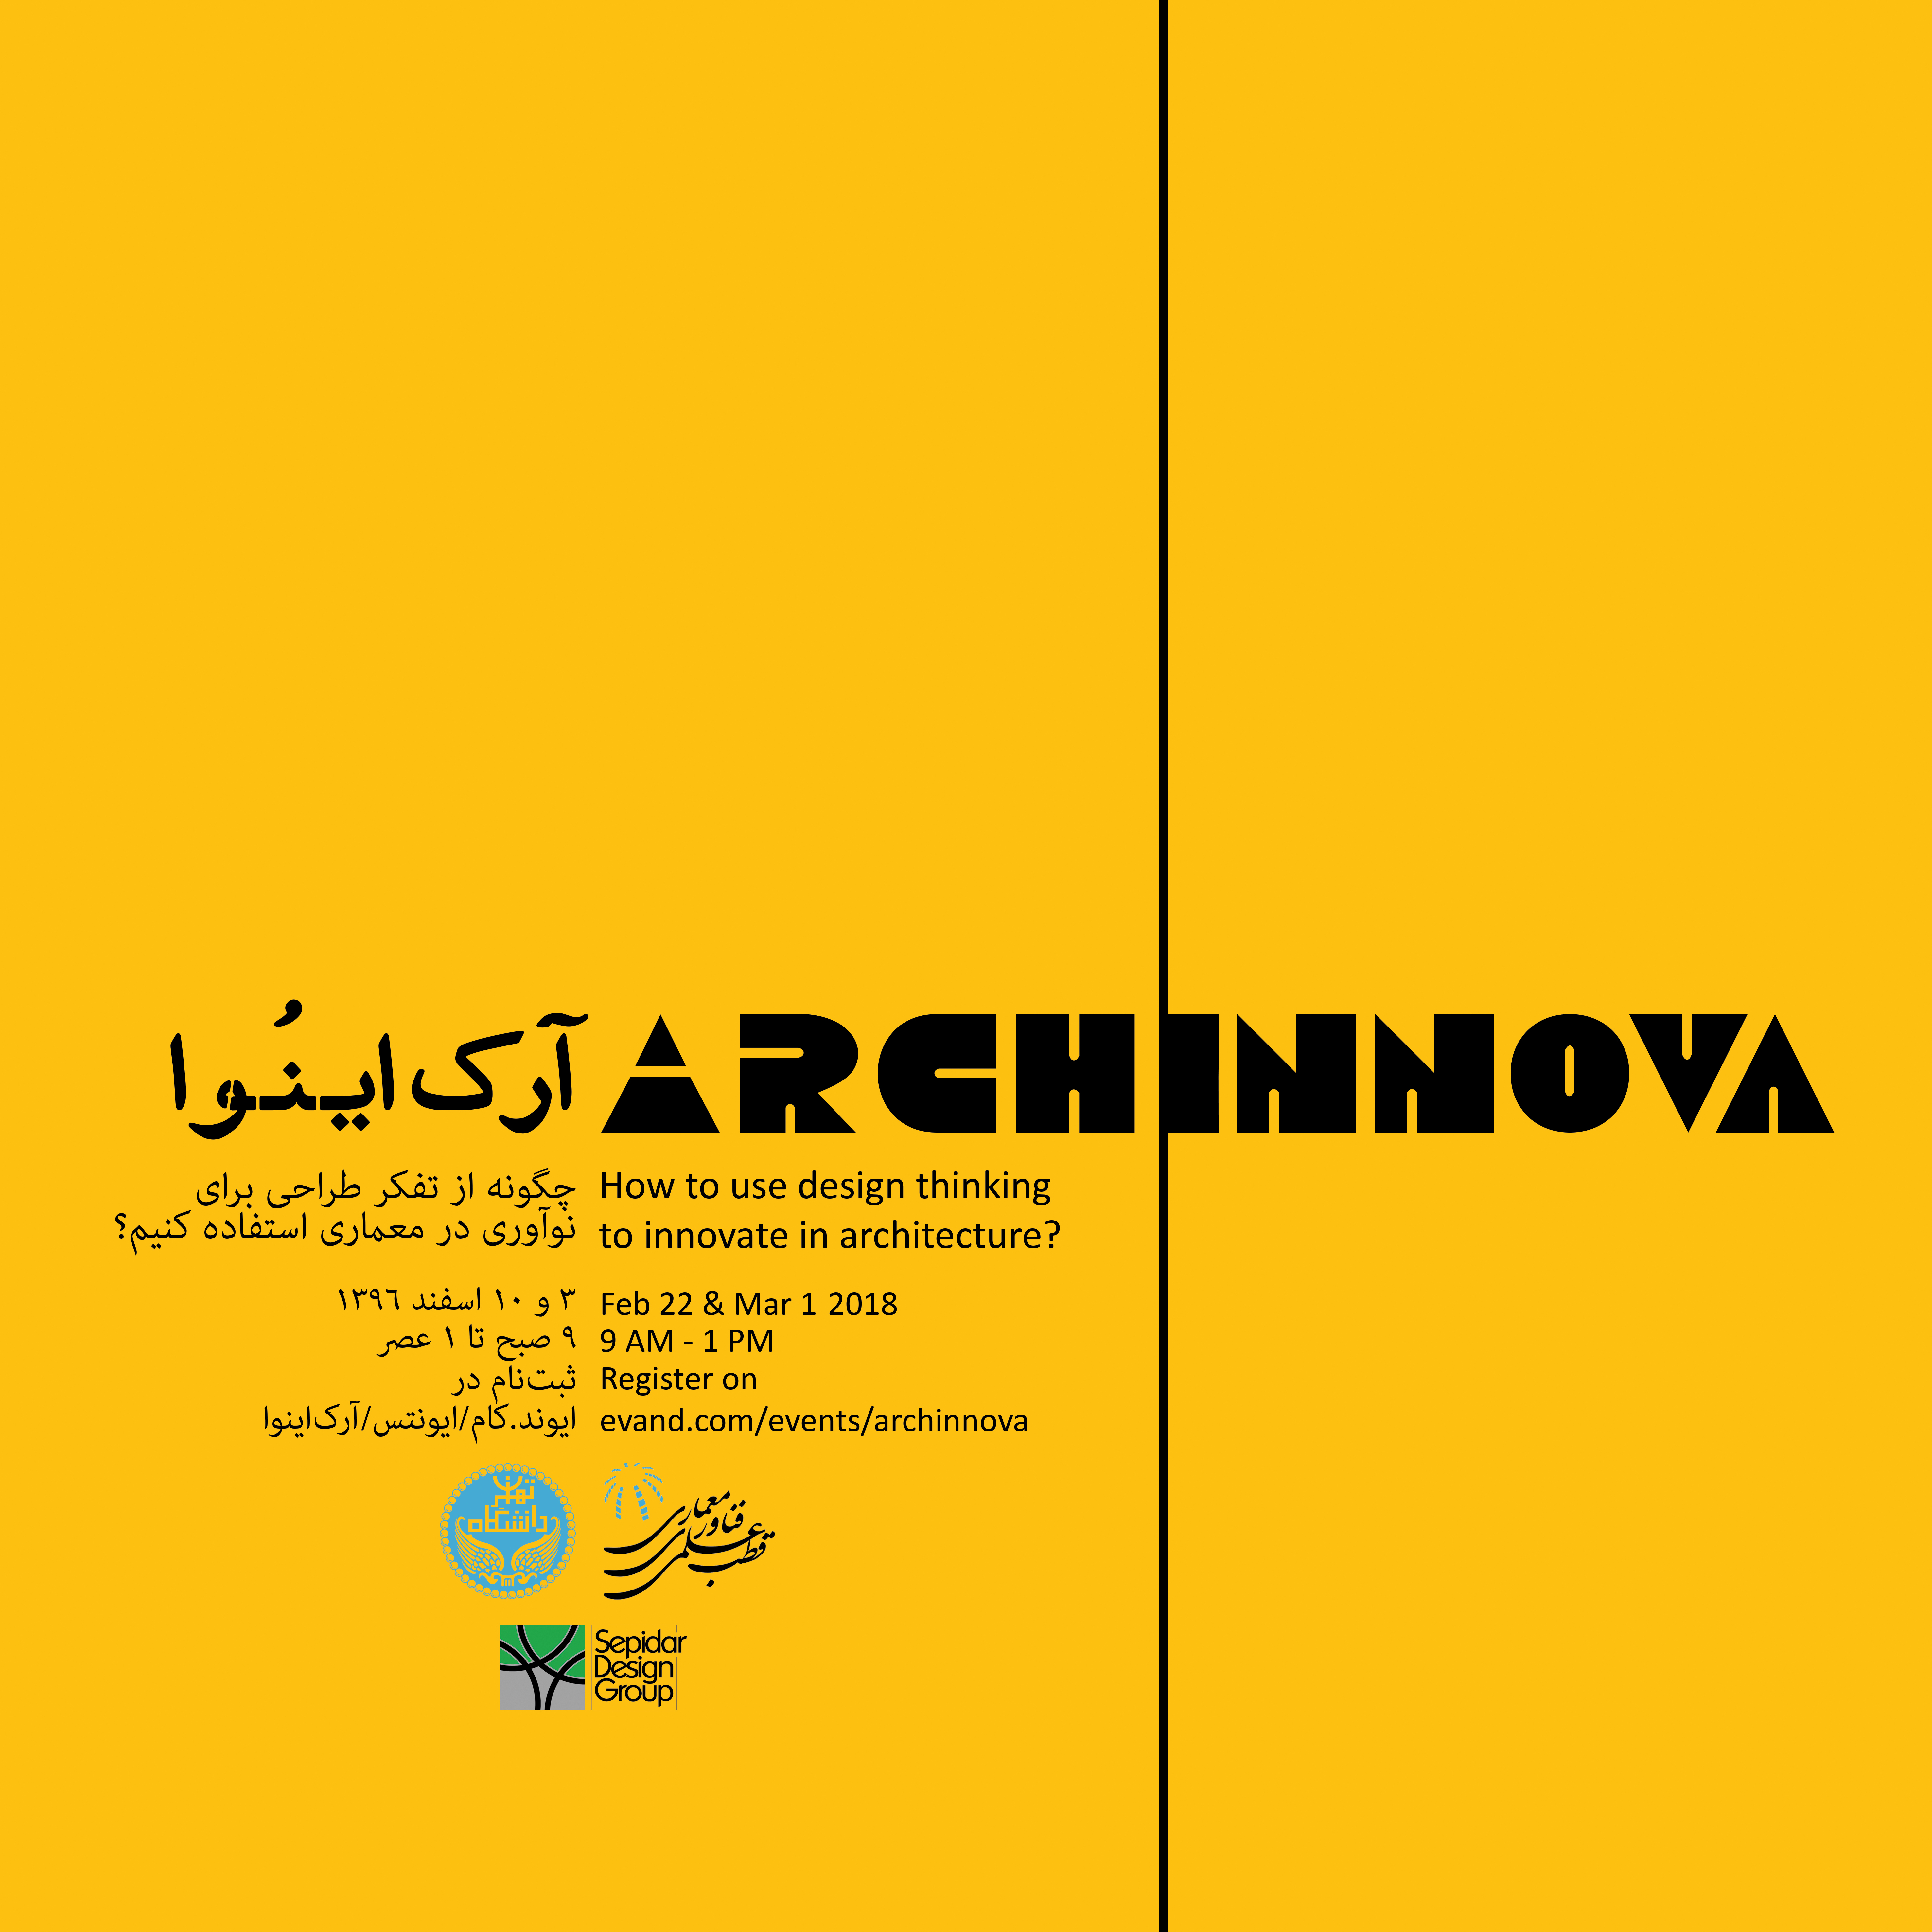 Archinnova workshop on Design Thinking and Innovation in Architecture